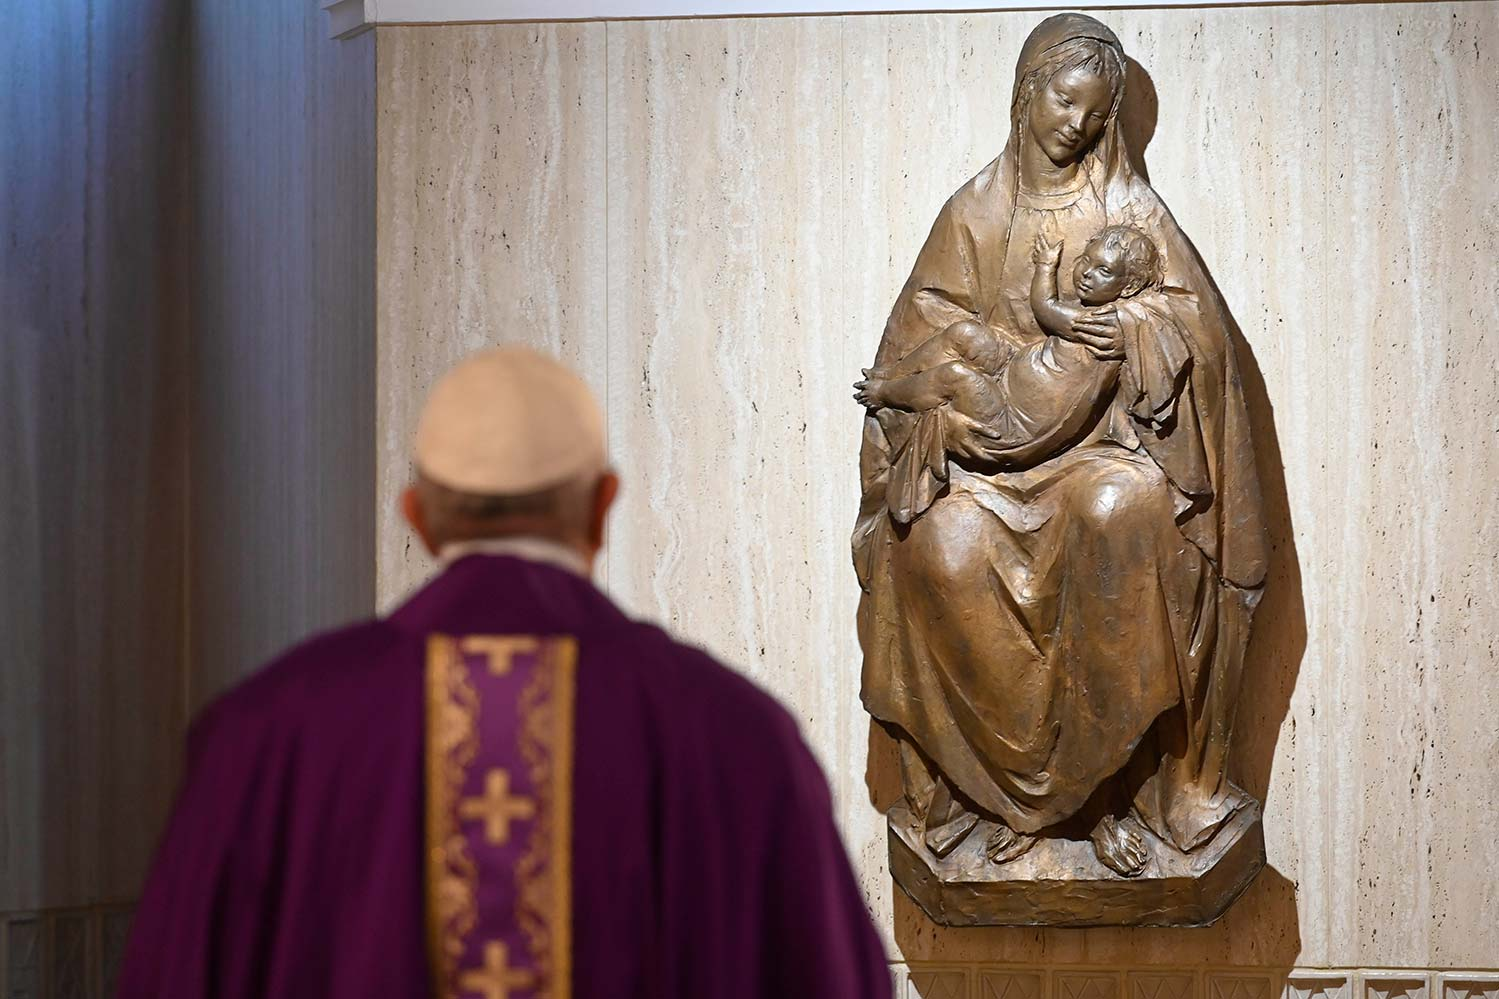 Pope Francis prays before Mary at the end of a Mass March 12 in the chapel of his Vatican residence, the Domus Sanctae Marthae. At the beginning of the liturgy, the pope encouraged people to pray for their government leaders, who must make difficult decisions to contain the coronavirus pandemic. (CNS photo/Vatican Media)